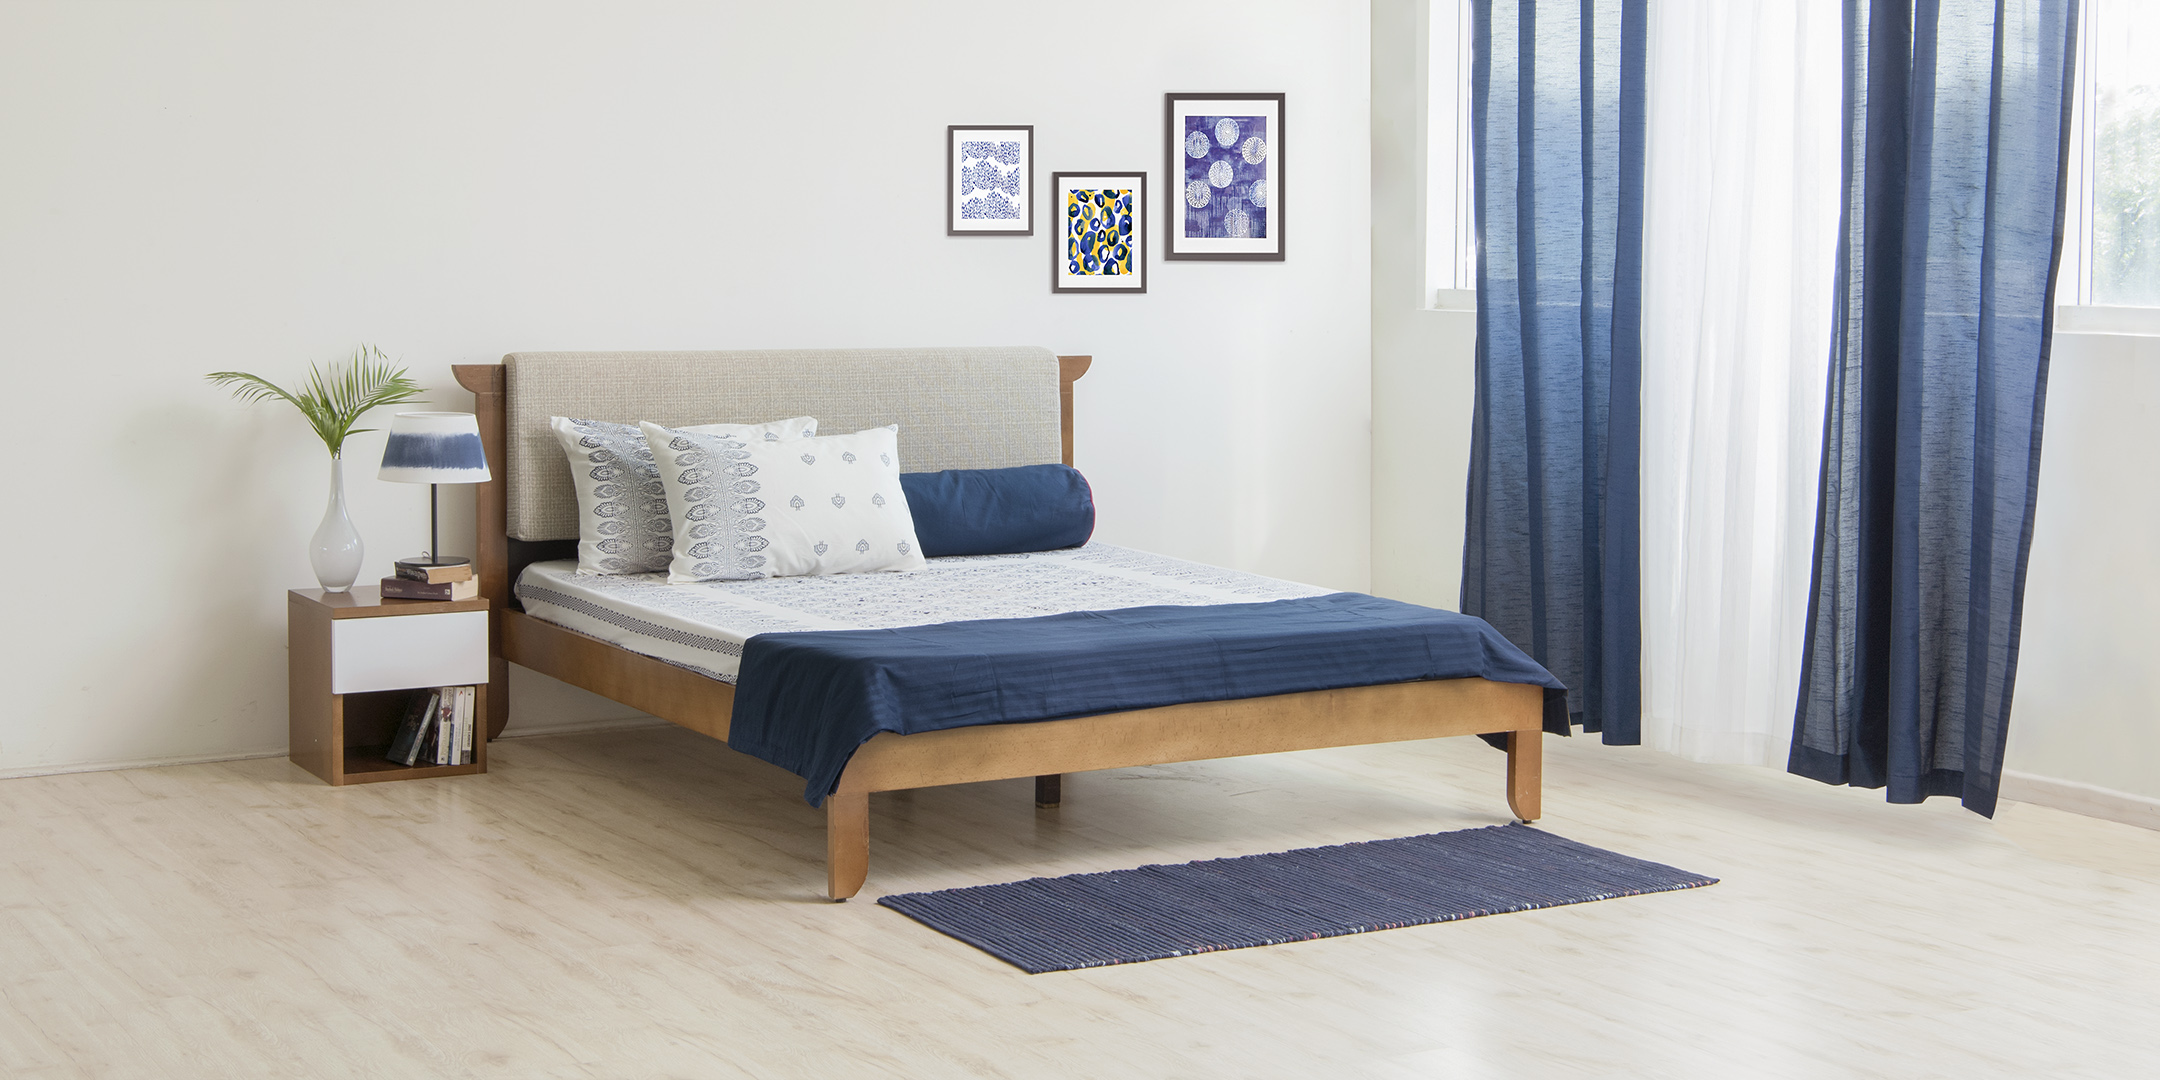 guest room furniture. Furniture For Every Guest Room O